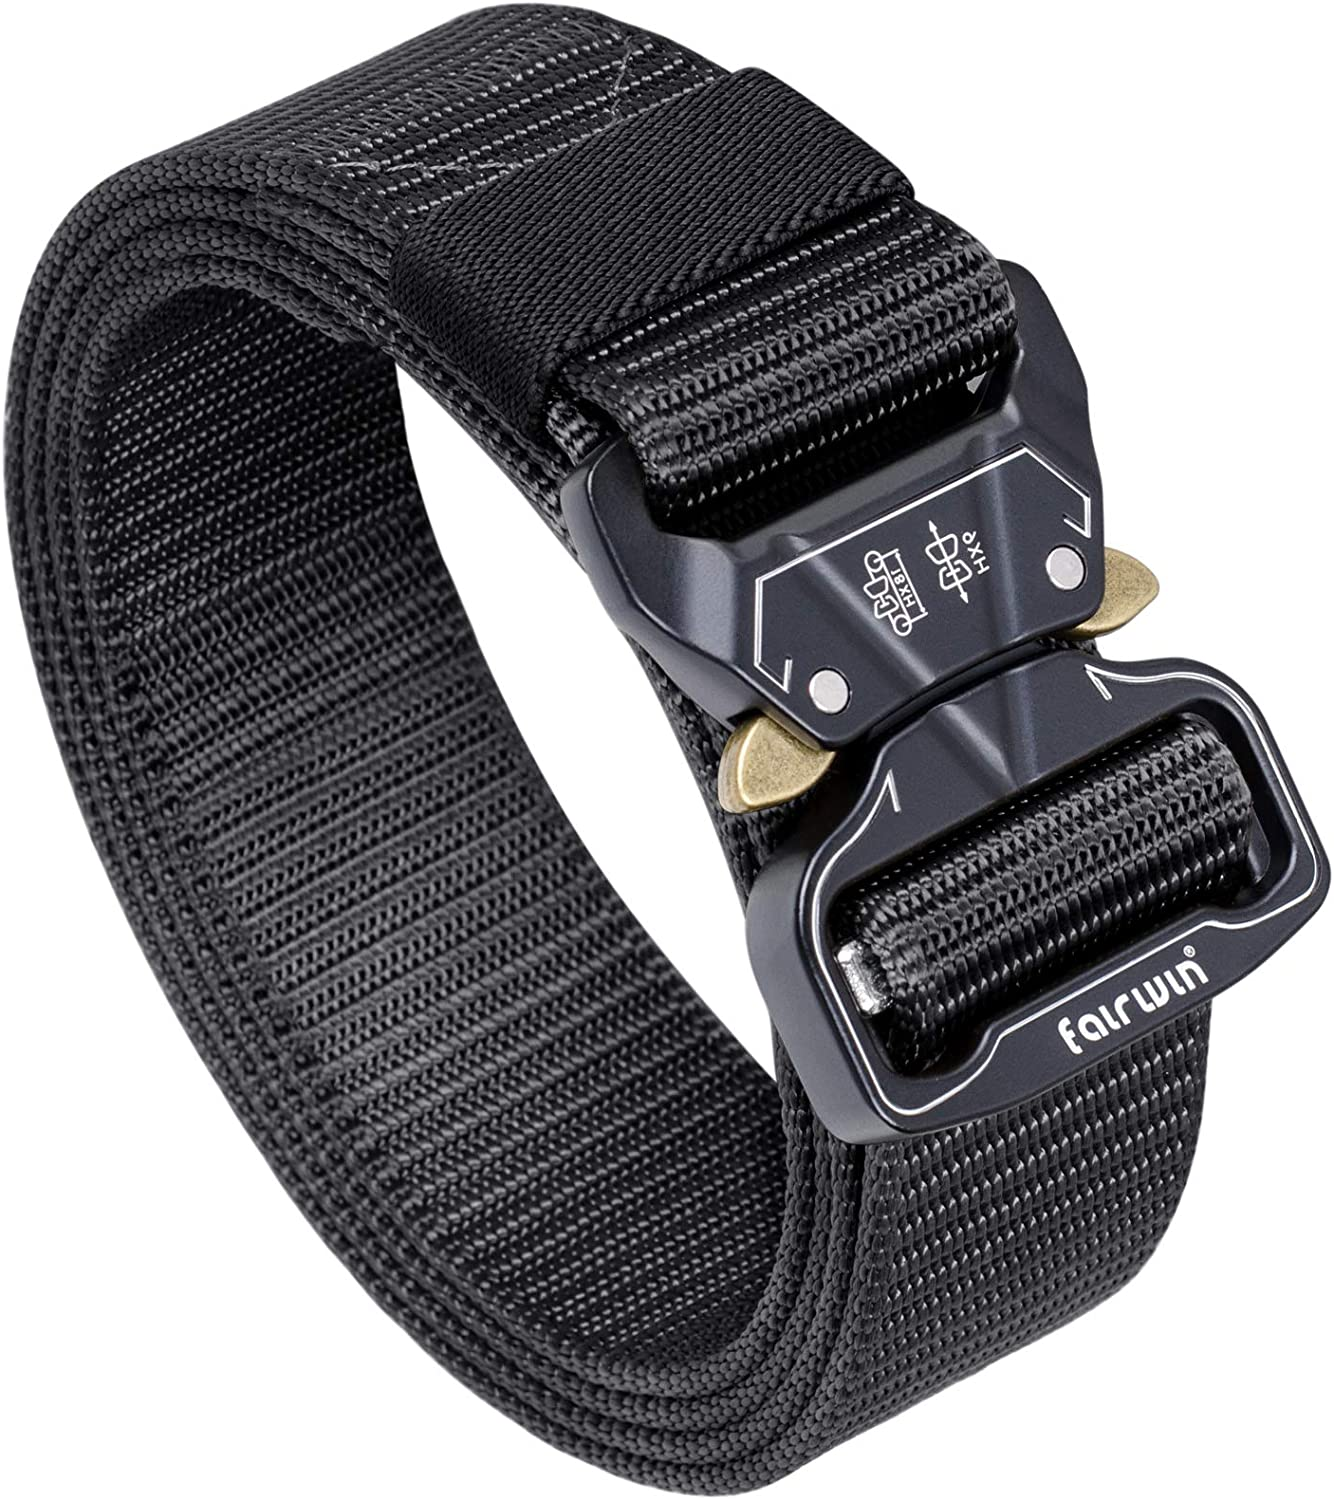 Fairwin Tactical Belt, 1.5 Inch Wide Heavy Duty Military Style Tactical Belts for men: Clothing